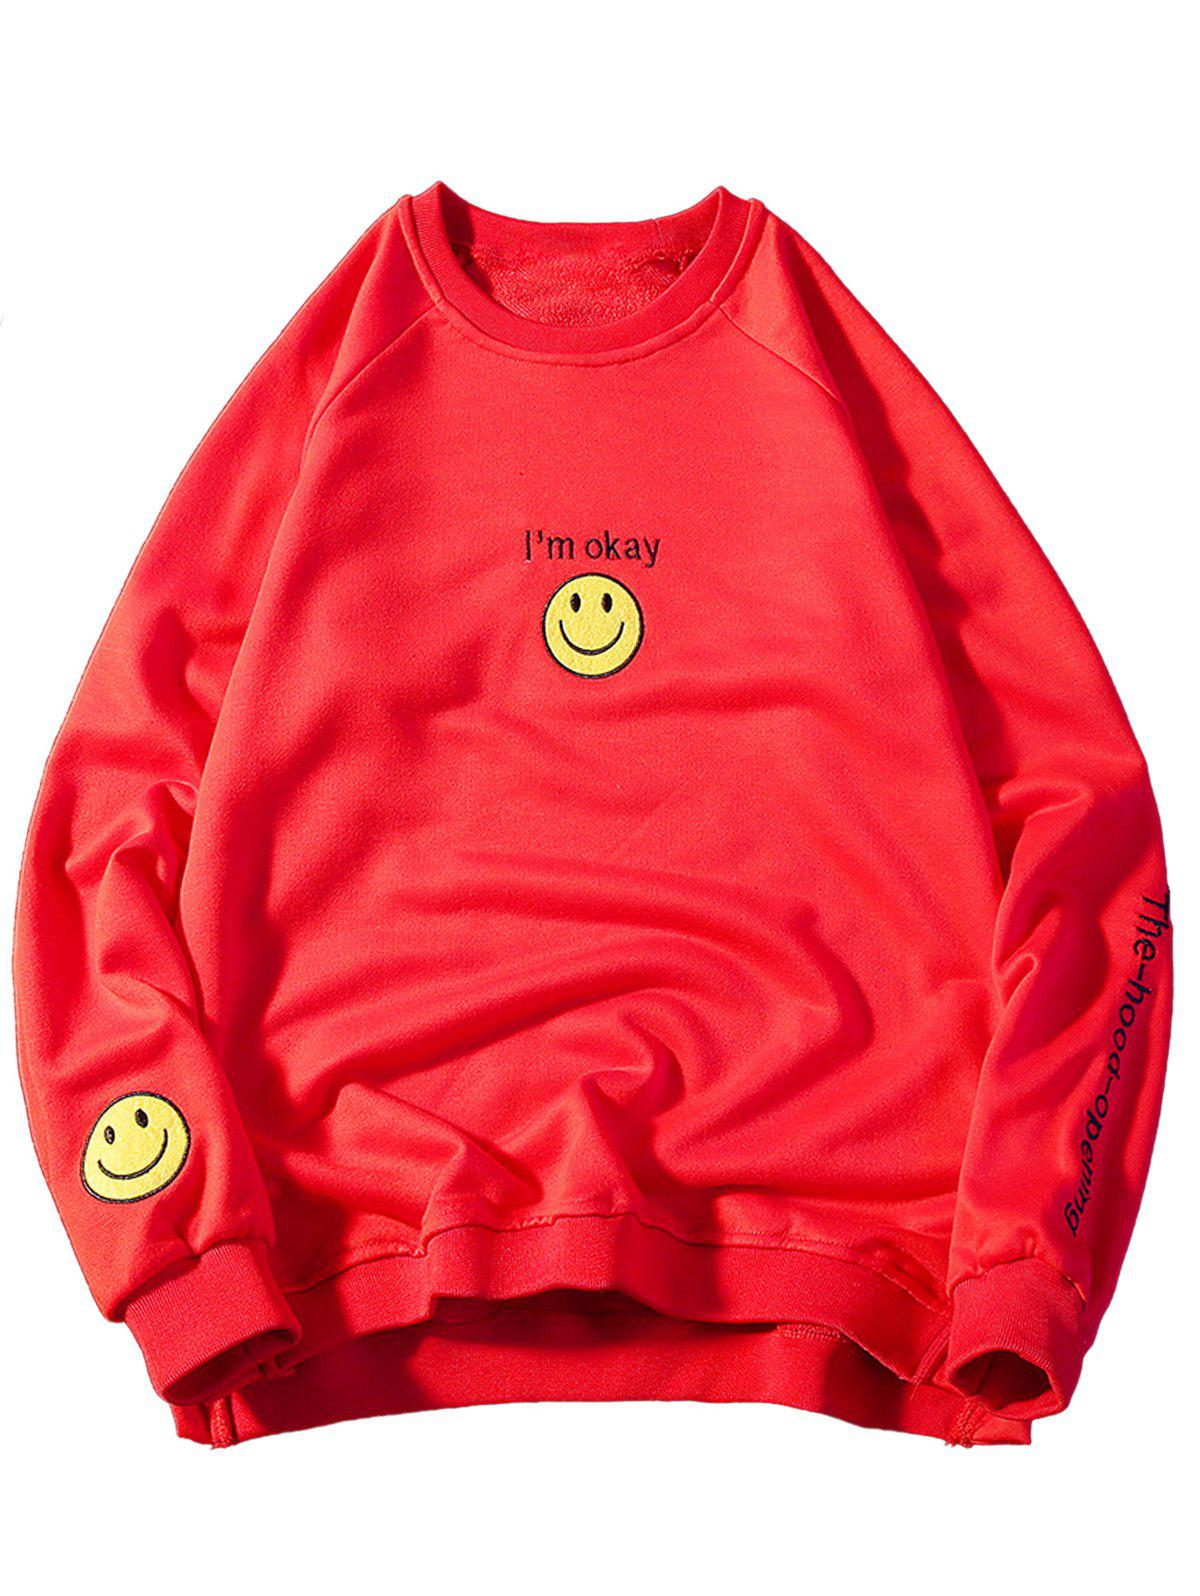 Graphic Smile Face Embroidered Sweatshirt smile face embroidered high low t shirt